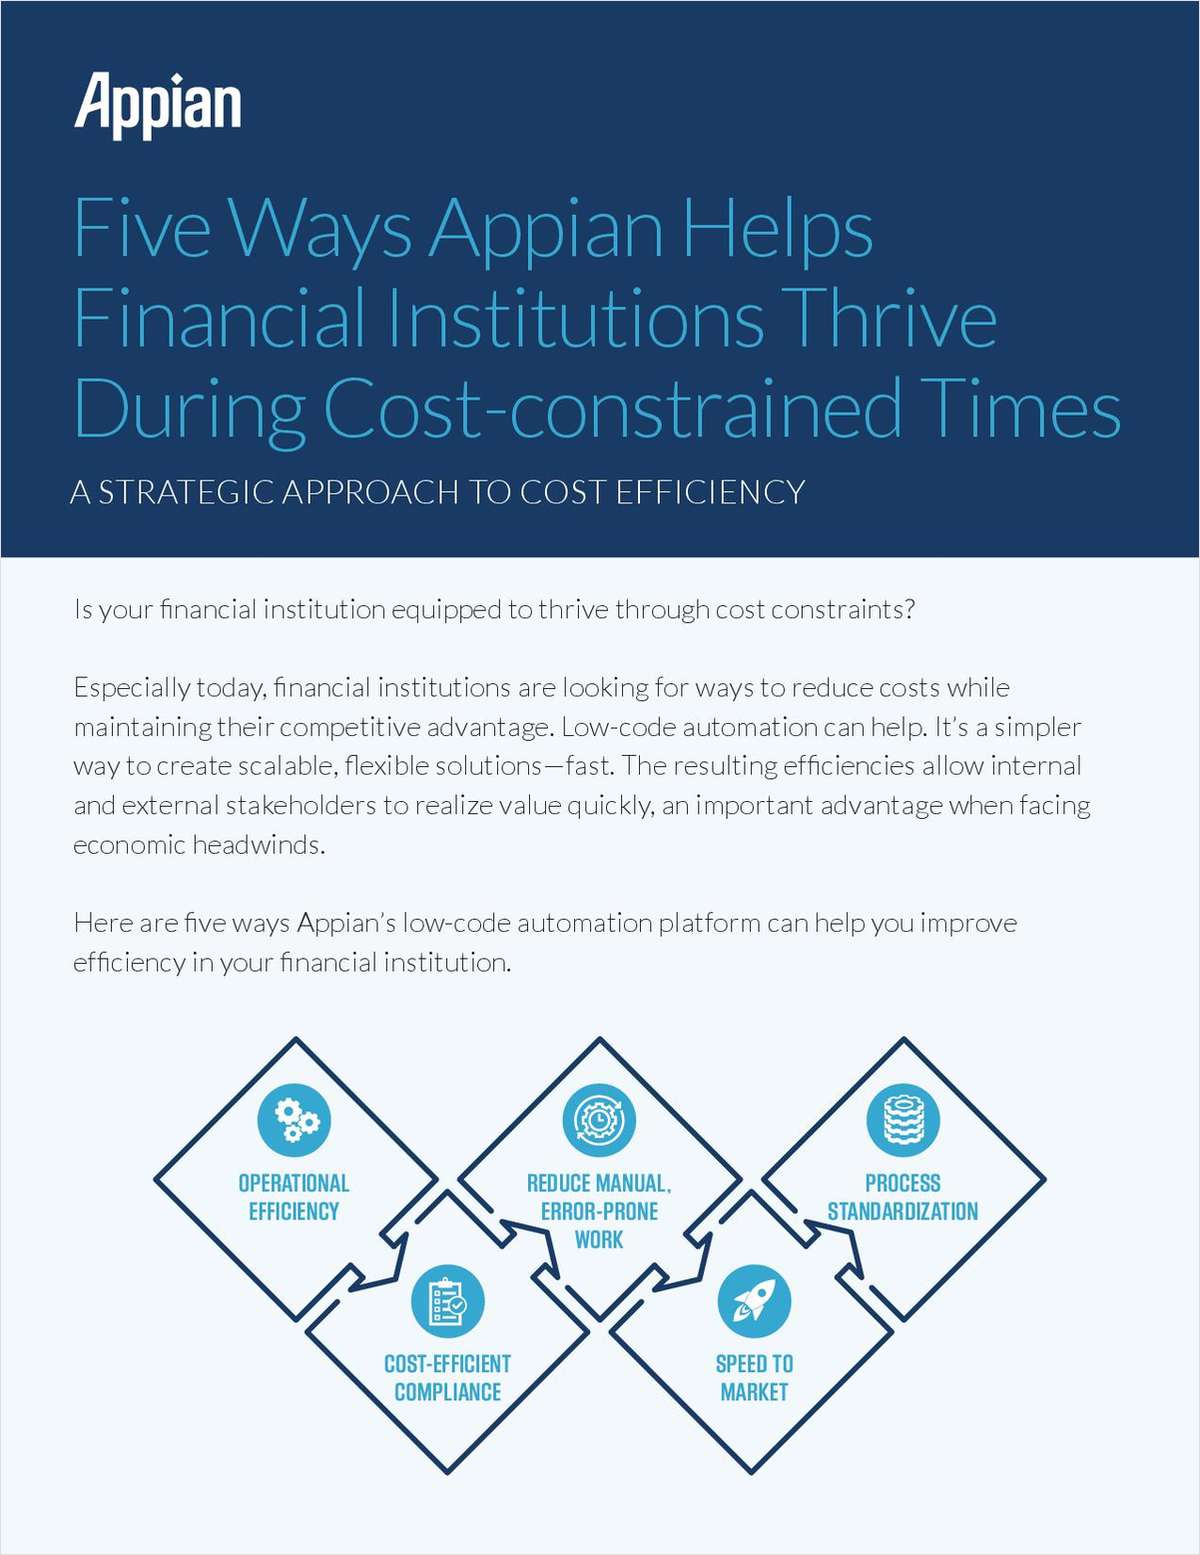 Five Ways Appian Helps Financial Institutions Thrive in Cost-Constrained Times